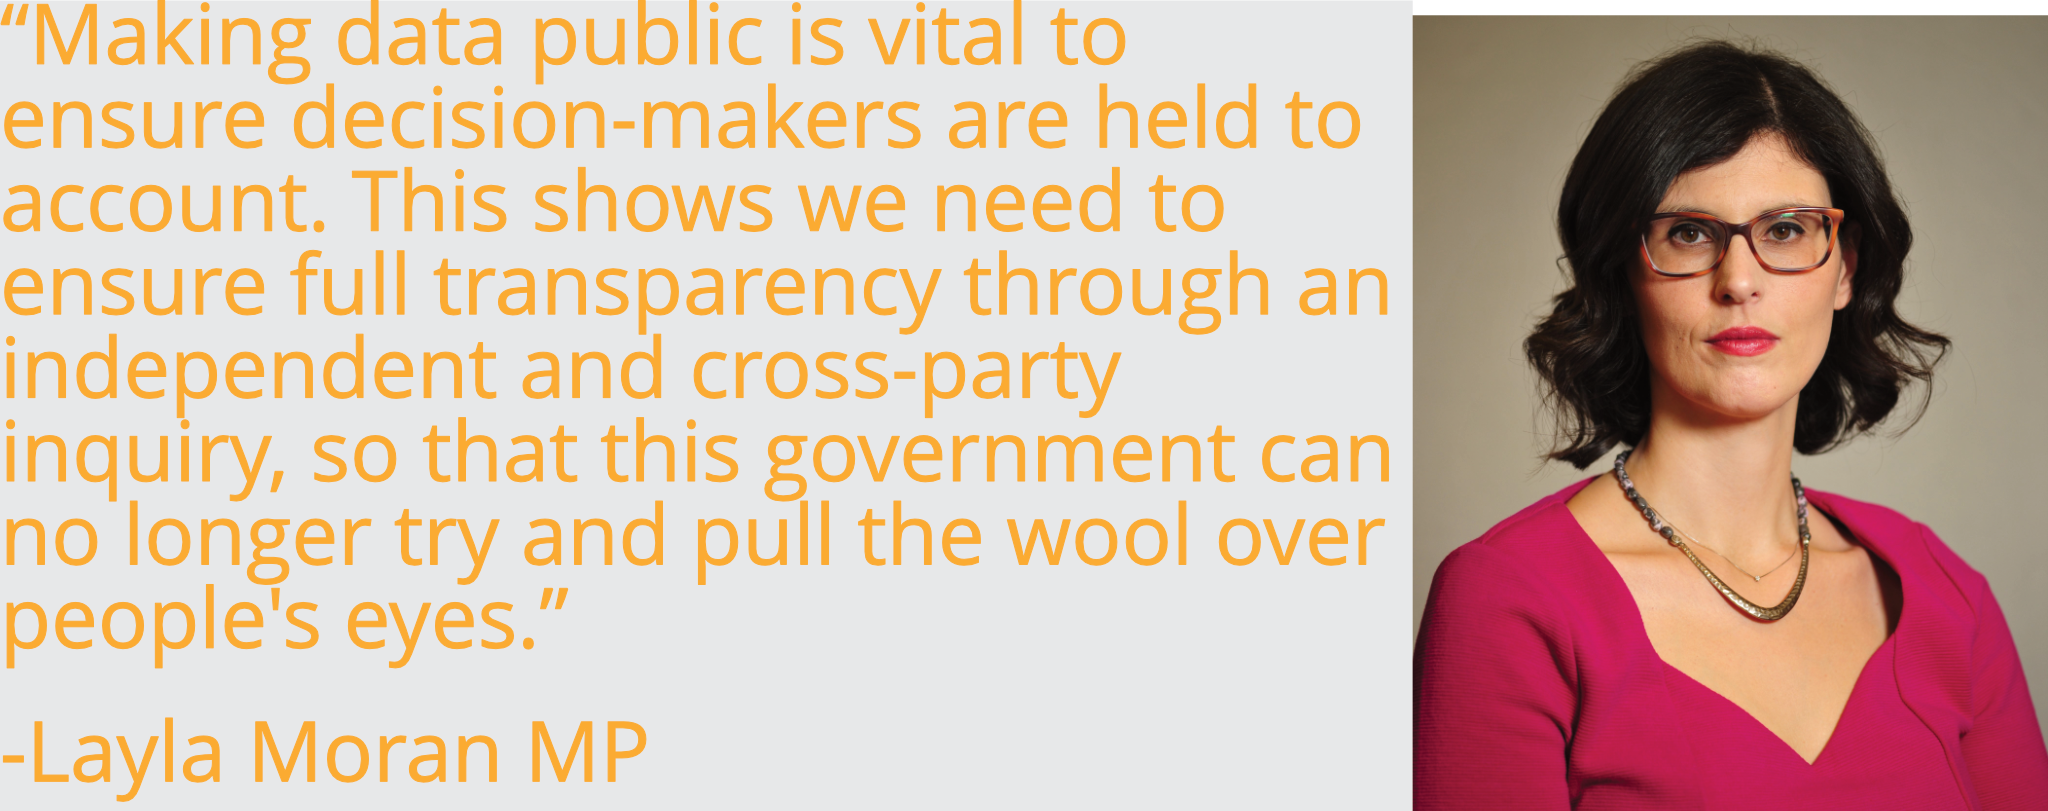 """Making data public is vital to ensure decision-makers are held to account. This shows we need to ensure full transparency through an independent and cross-party inquiry, so that this government can no longer try and pull the wool over people's eyes."""